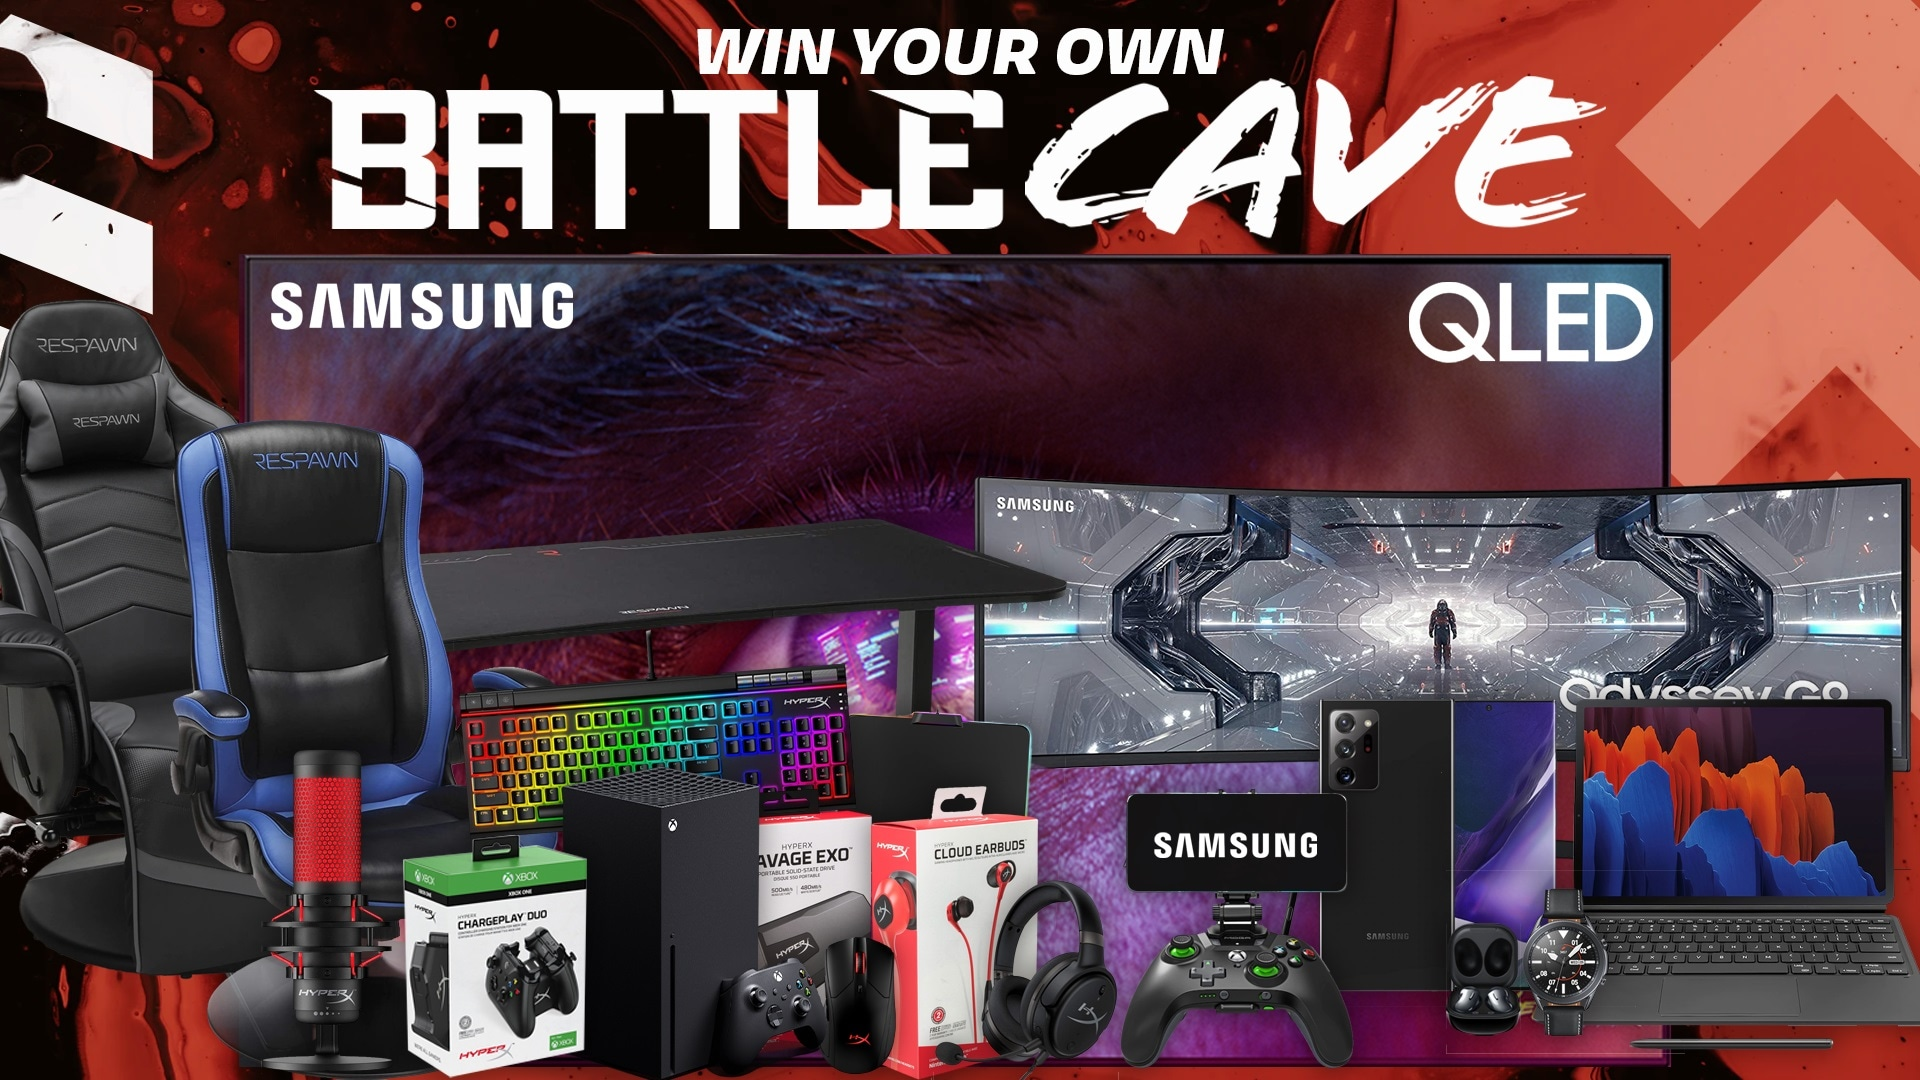 Win your own Battle Cave!!!